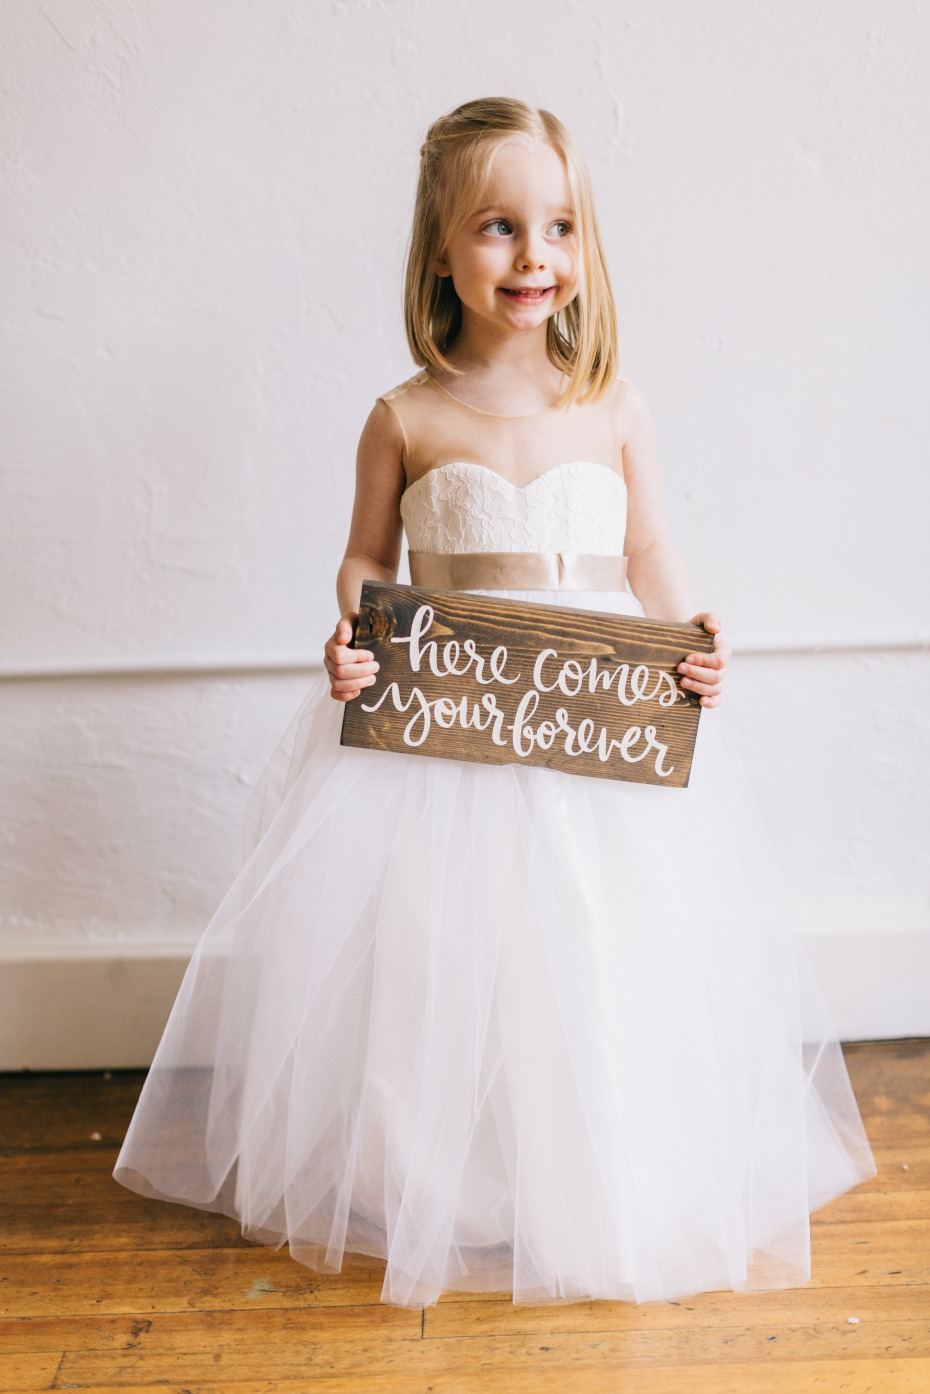 here comes your forever wedding sign